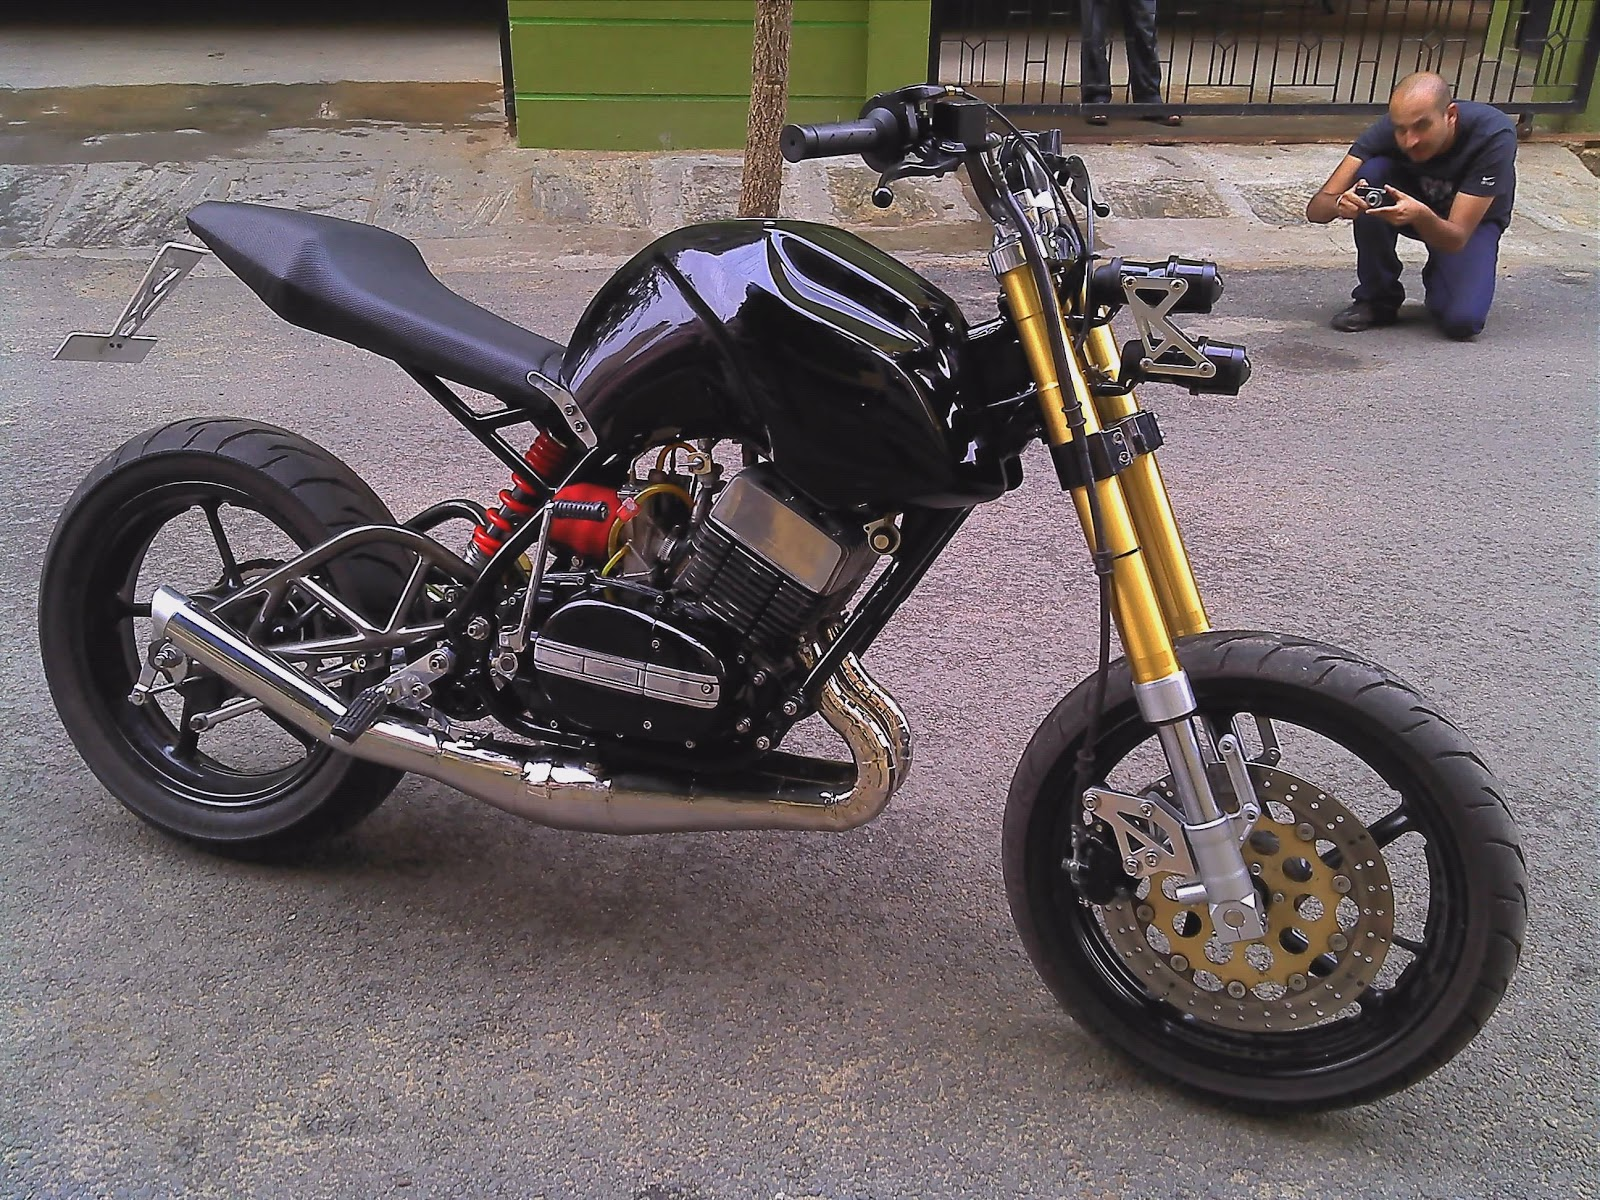 Yamaha Tw200 Modified Street Fighter Motorcy...